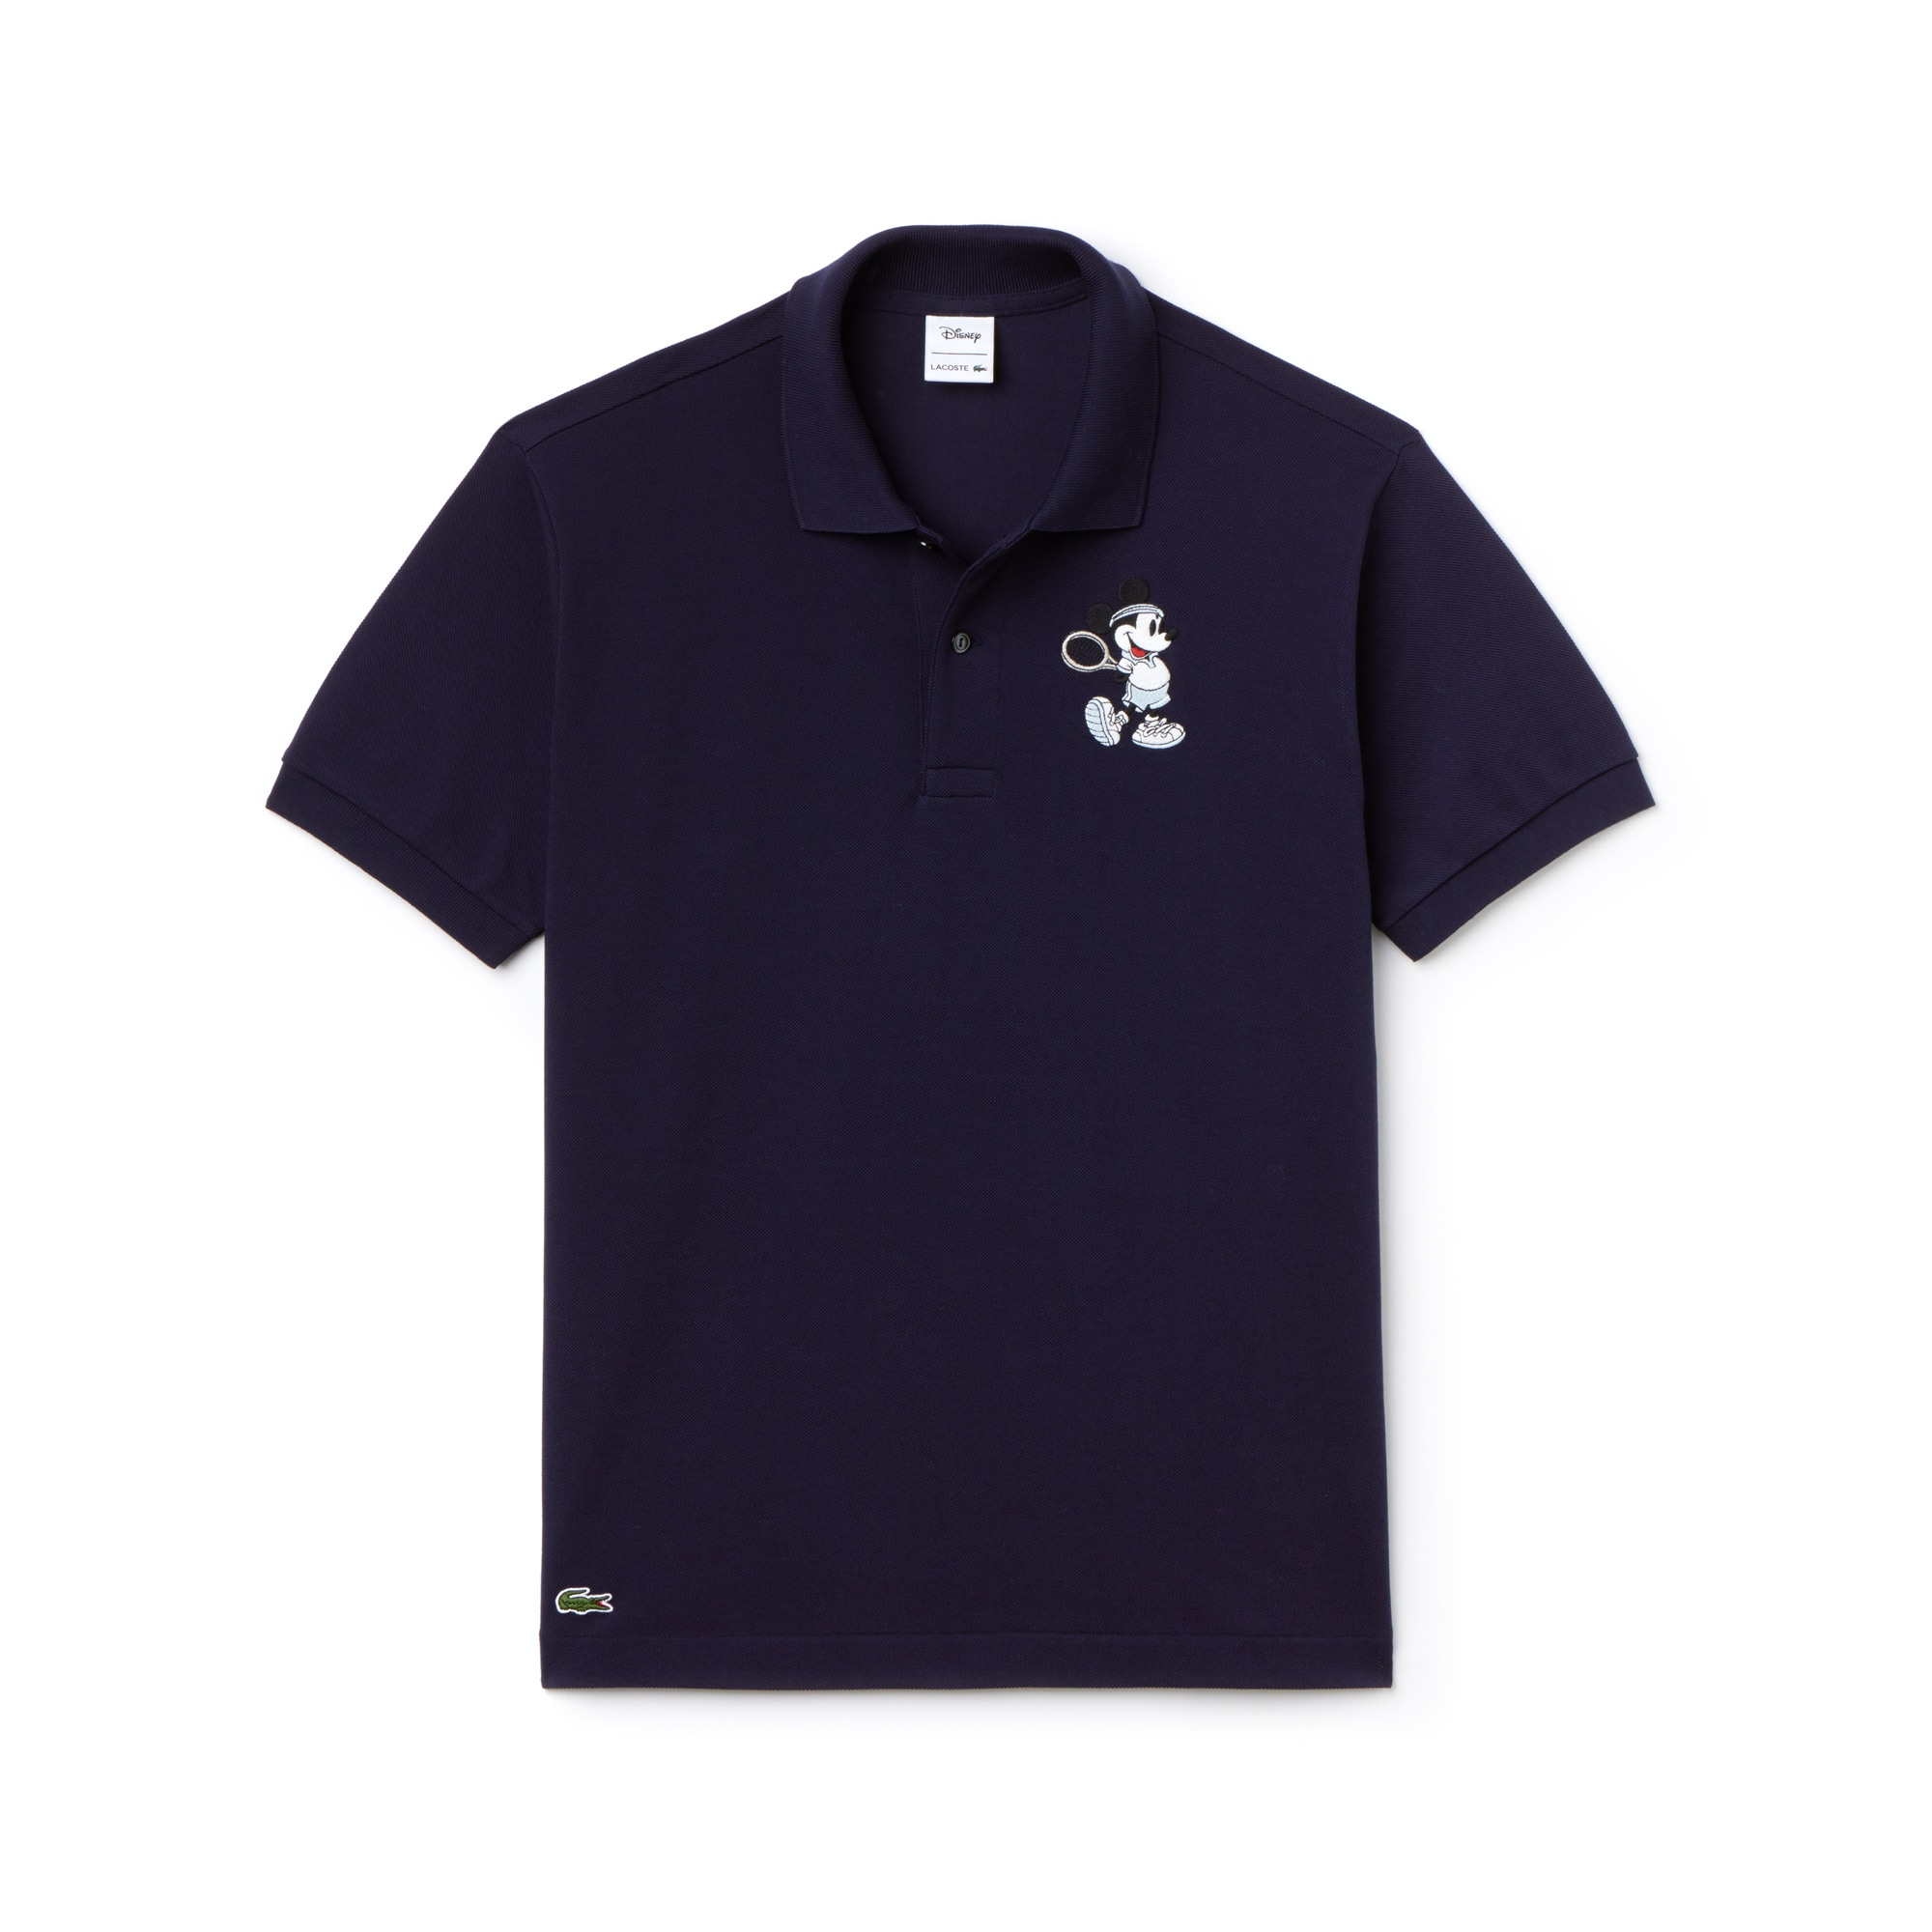 Men's L.12.12 Lacoste Disney Mickey Embroidery Petit Piqué Polo